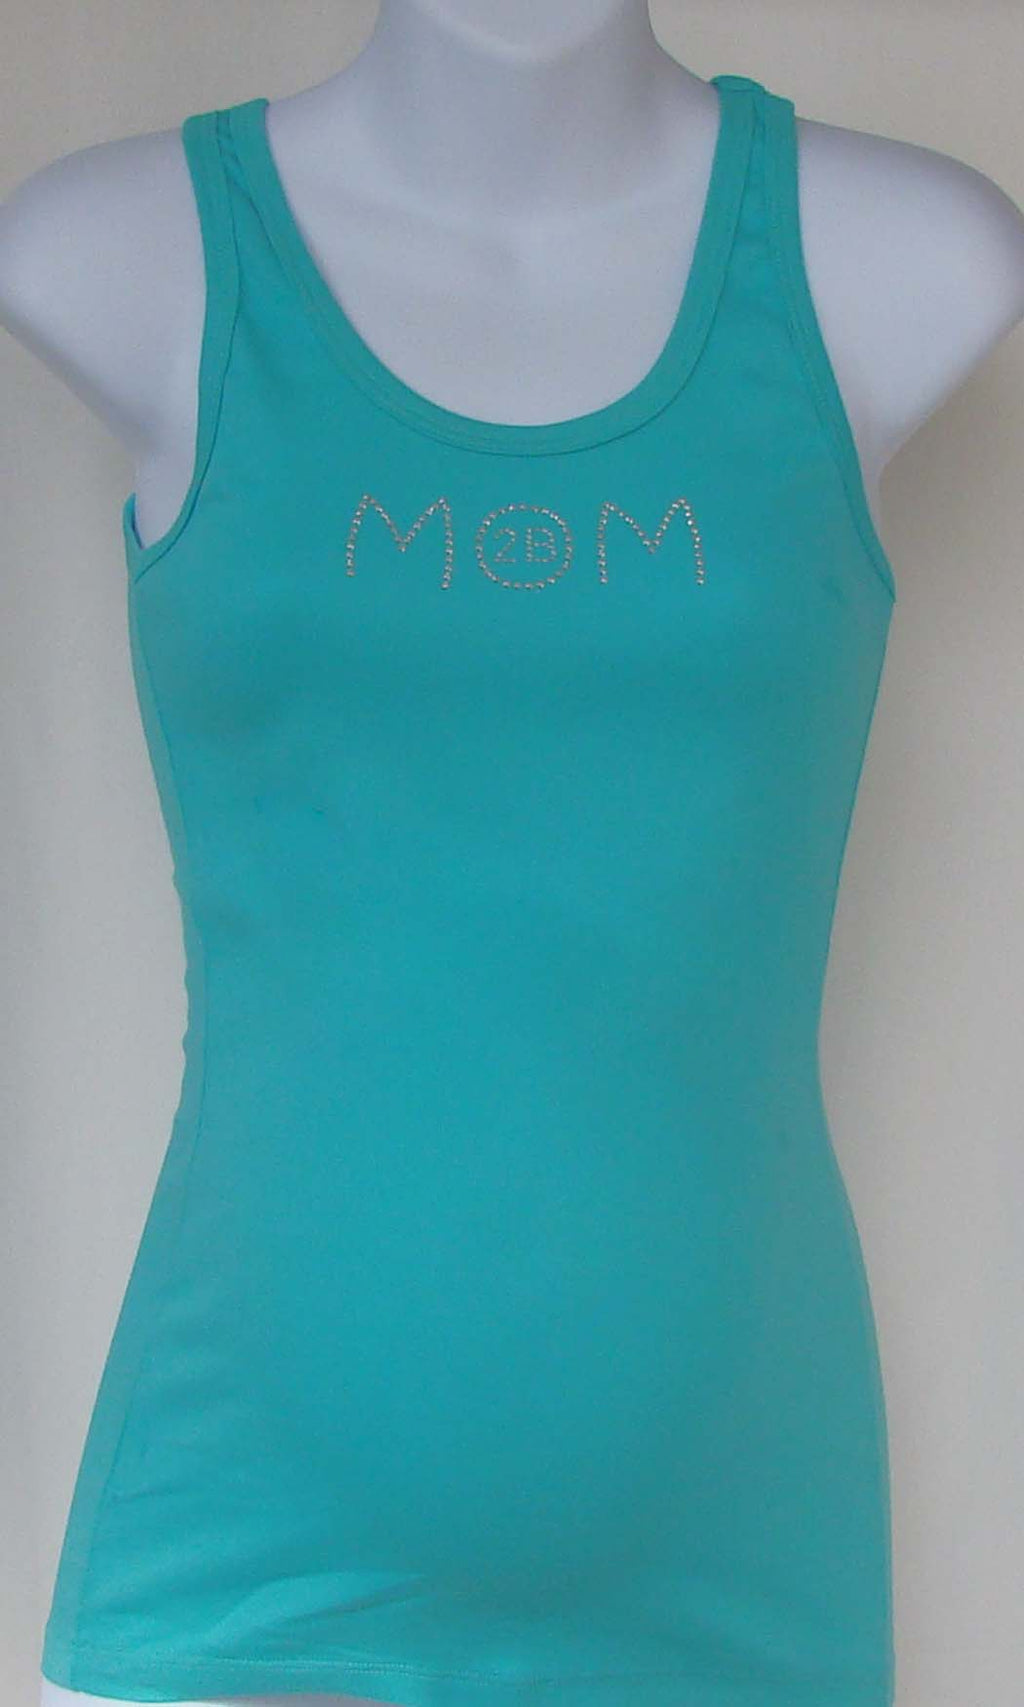 Beyond Maternity 'Mom 2B' Turquoise Tank